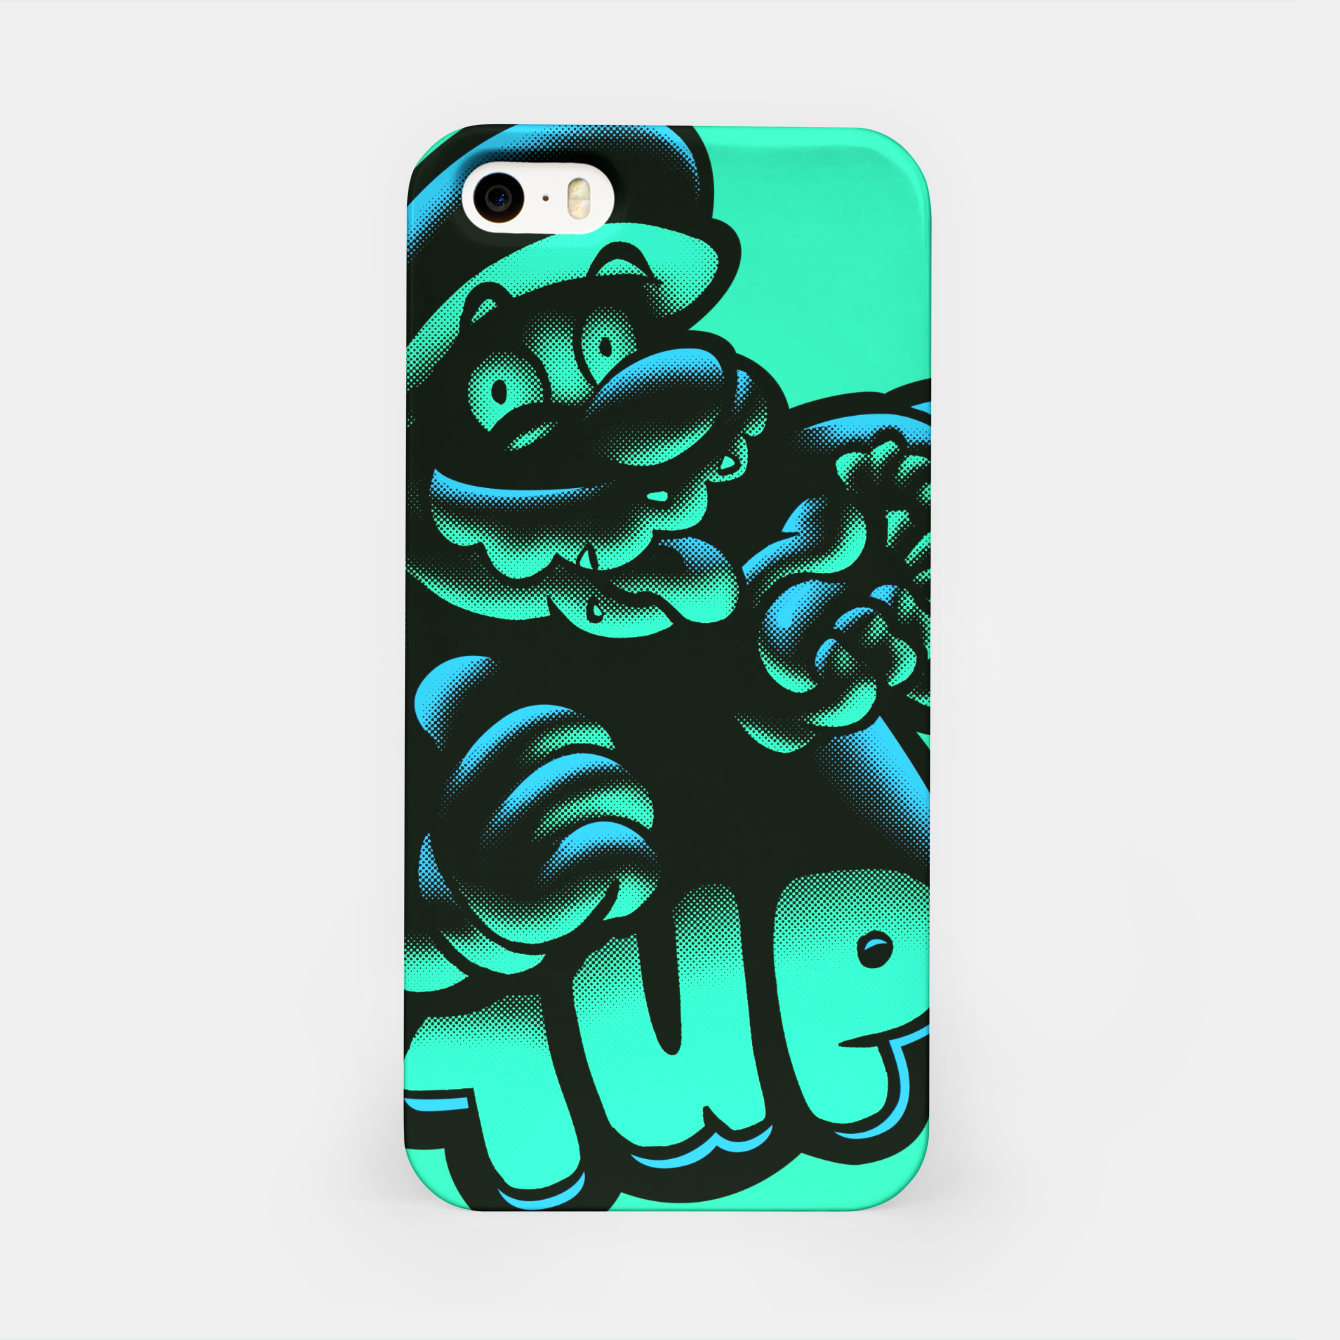 Zdjęcie 1UP iPhone Case - Live Heroes